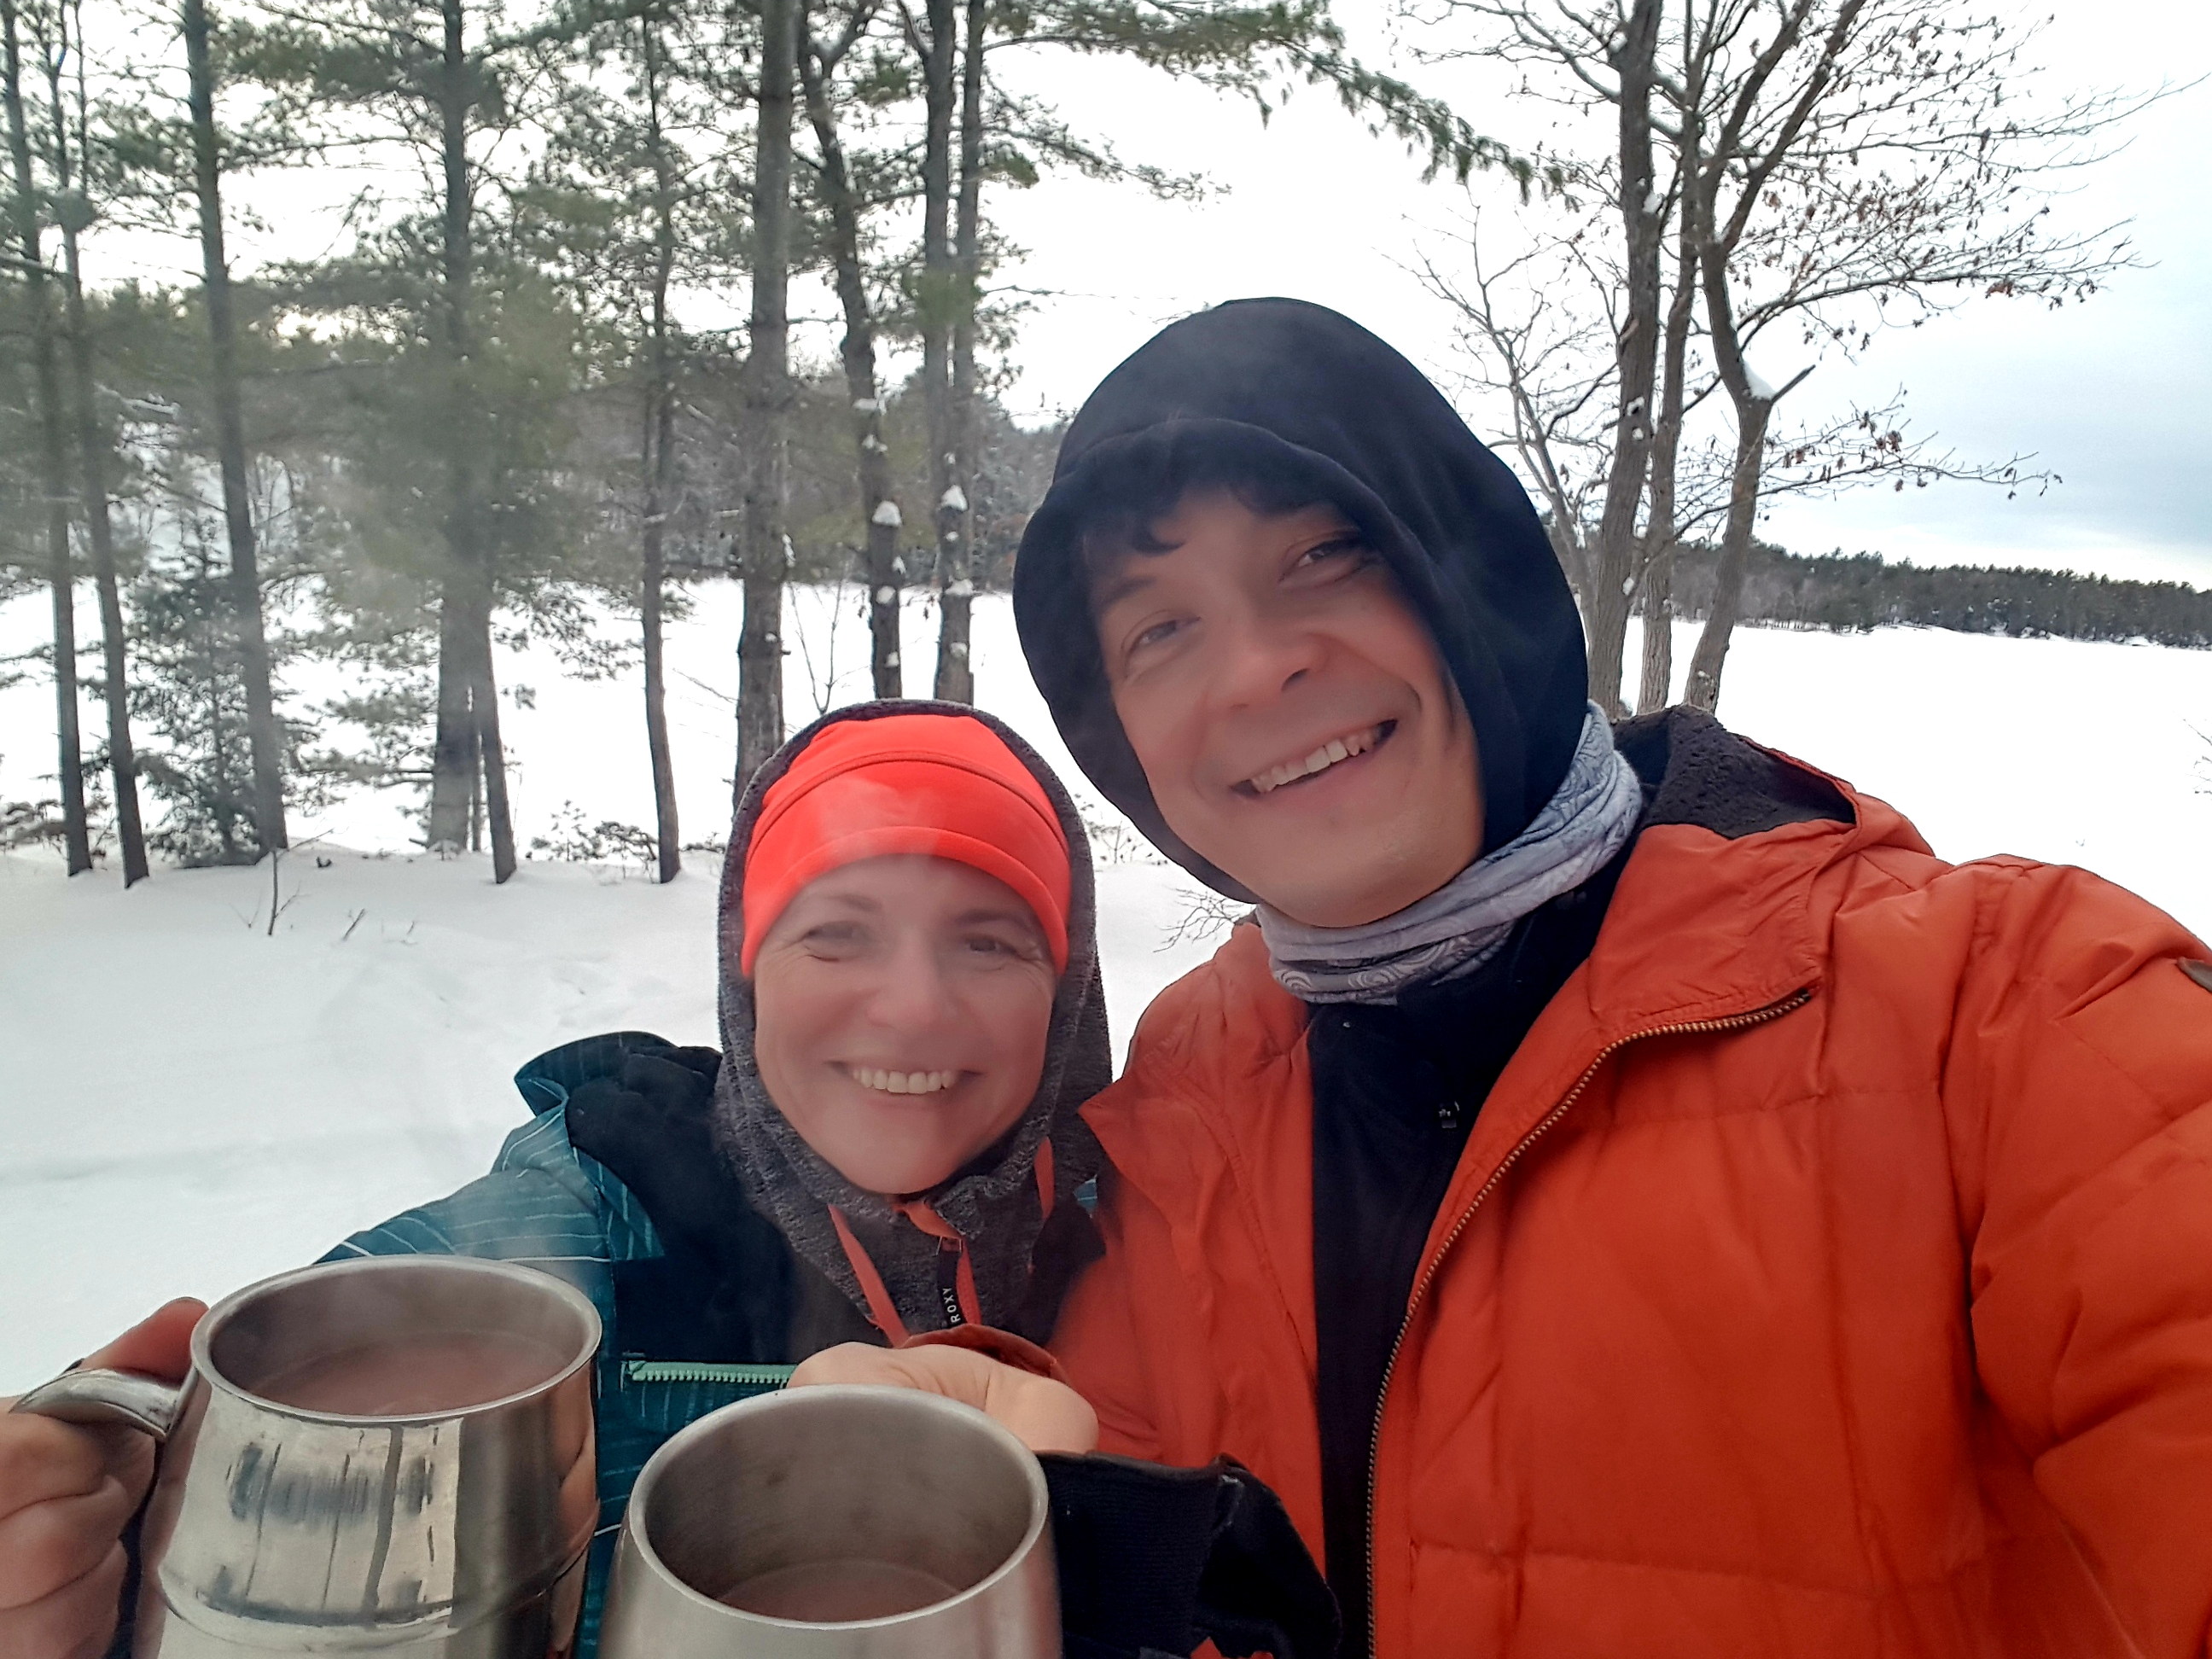 drinking hot chocolate at a campsite at McCrae lake